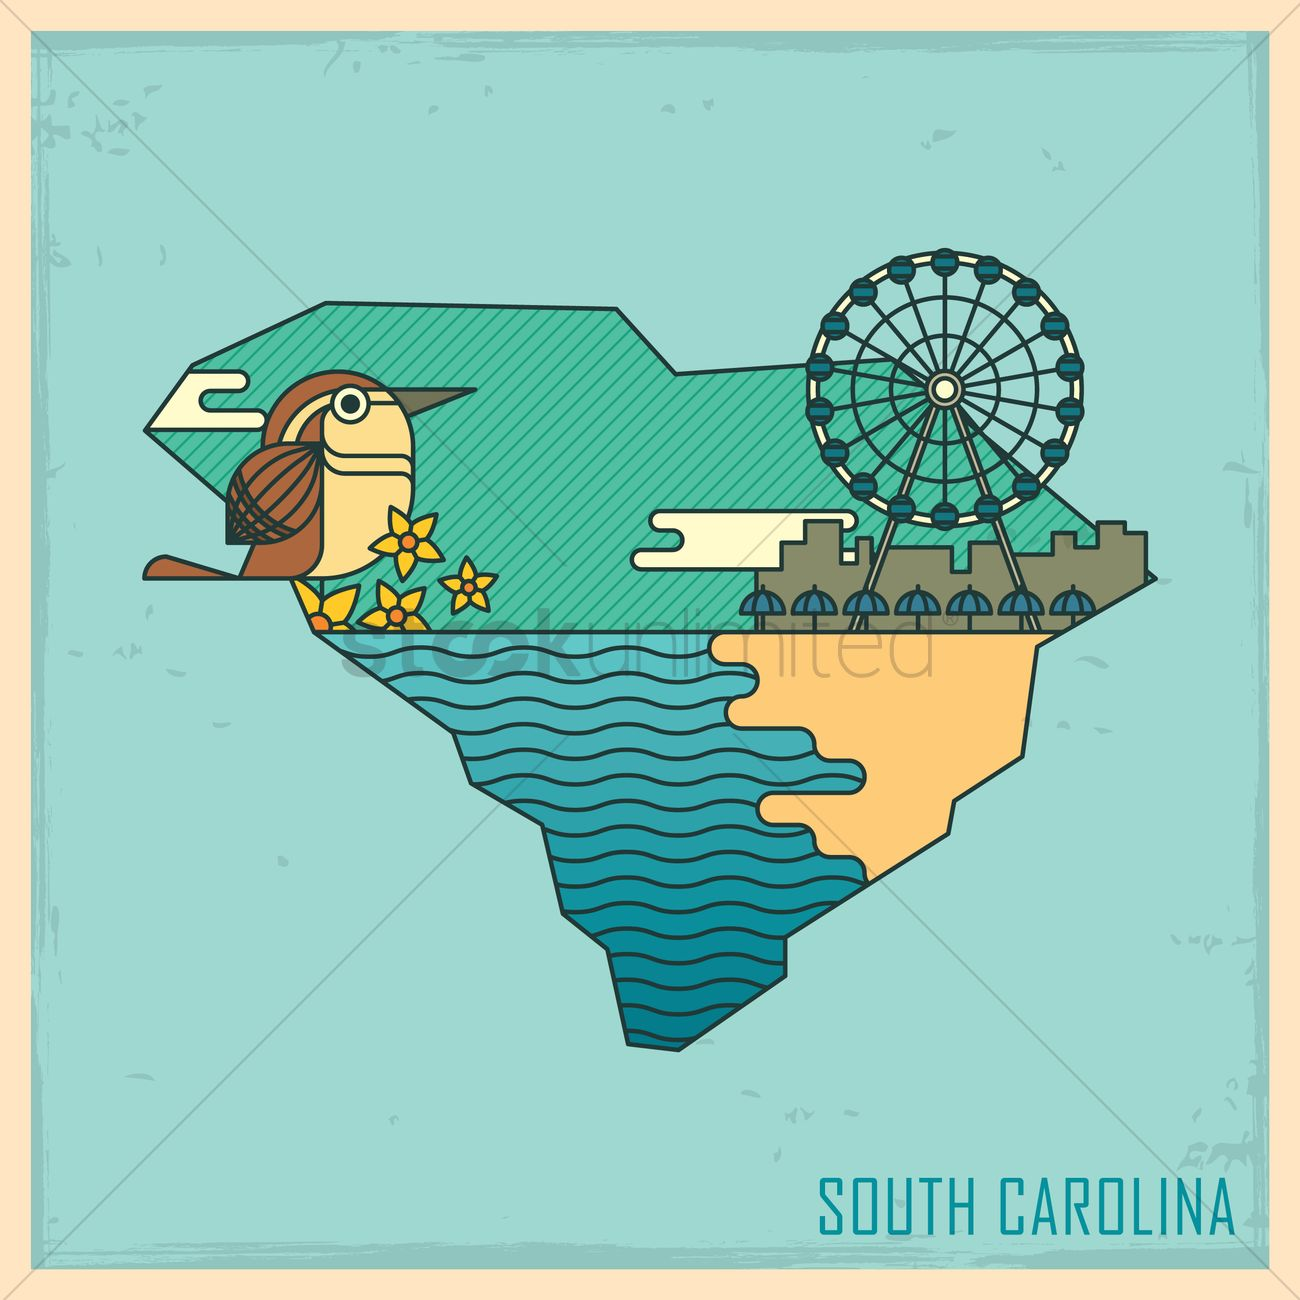 South carolina state map Vector Image - 1563488 | StockUnlimited